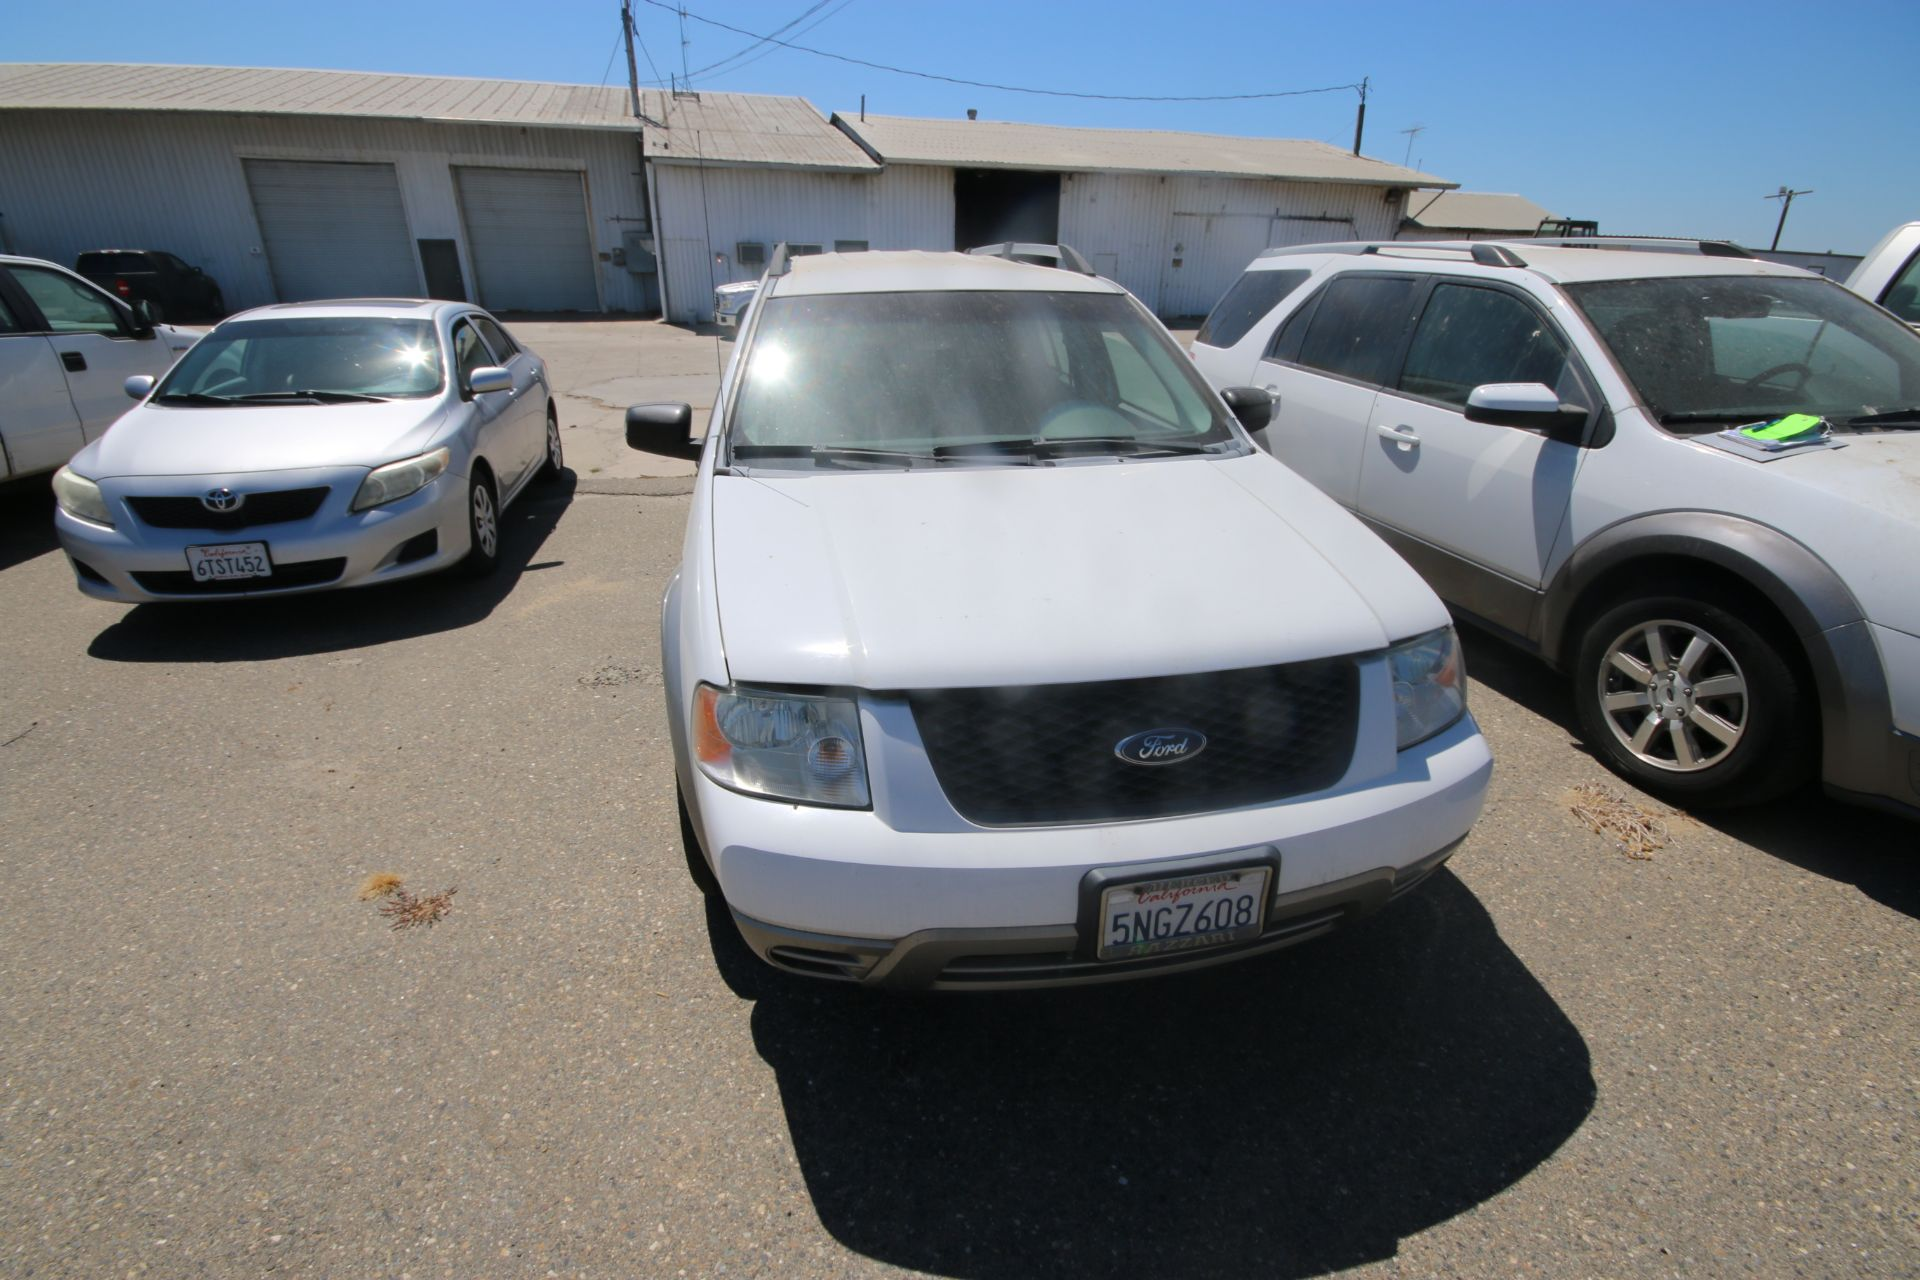 2006 Ford Freestyle, VIN #: 1FMDKO11X6GA41766, with 108,982 Miles, License Plate #: 5NGZ608, Started - Image 22 of 22